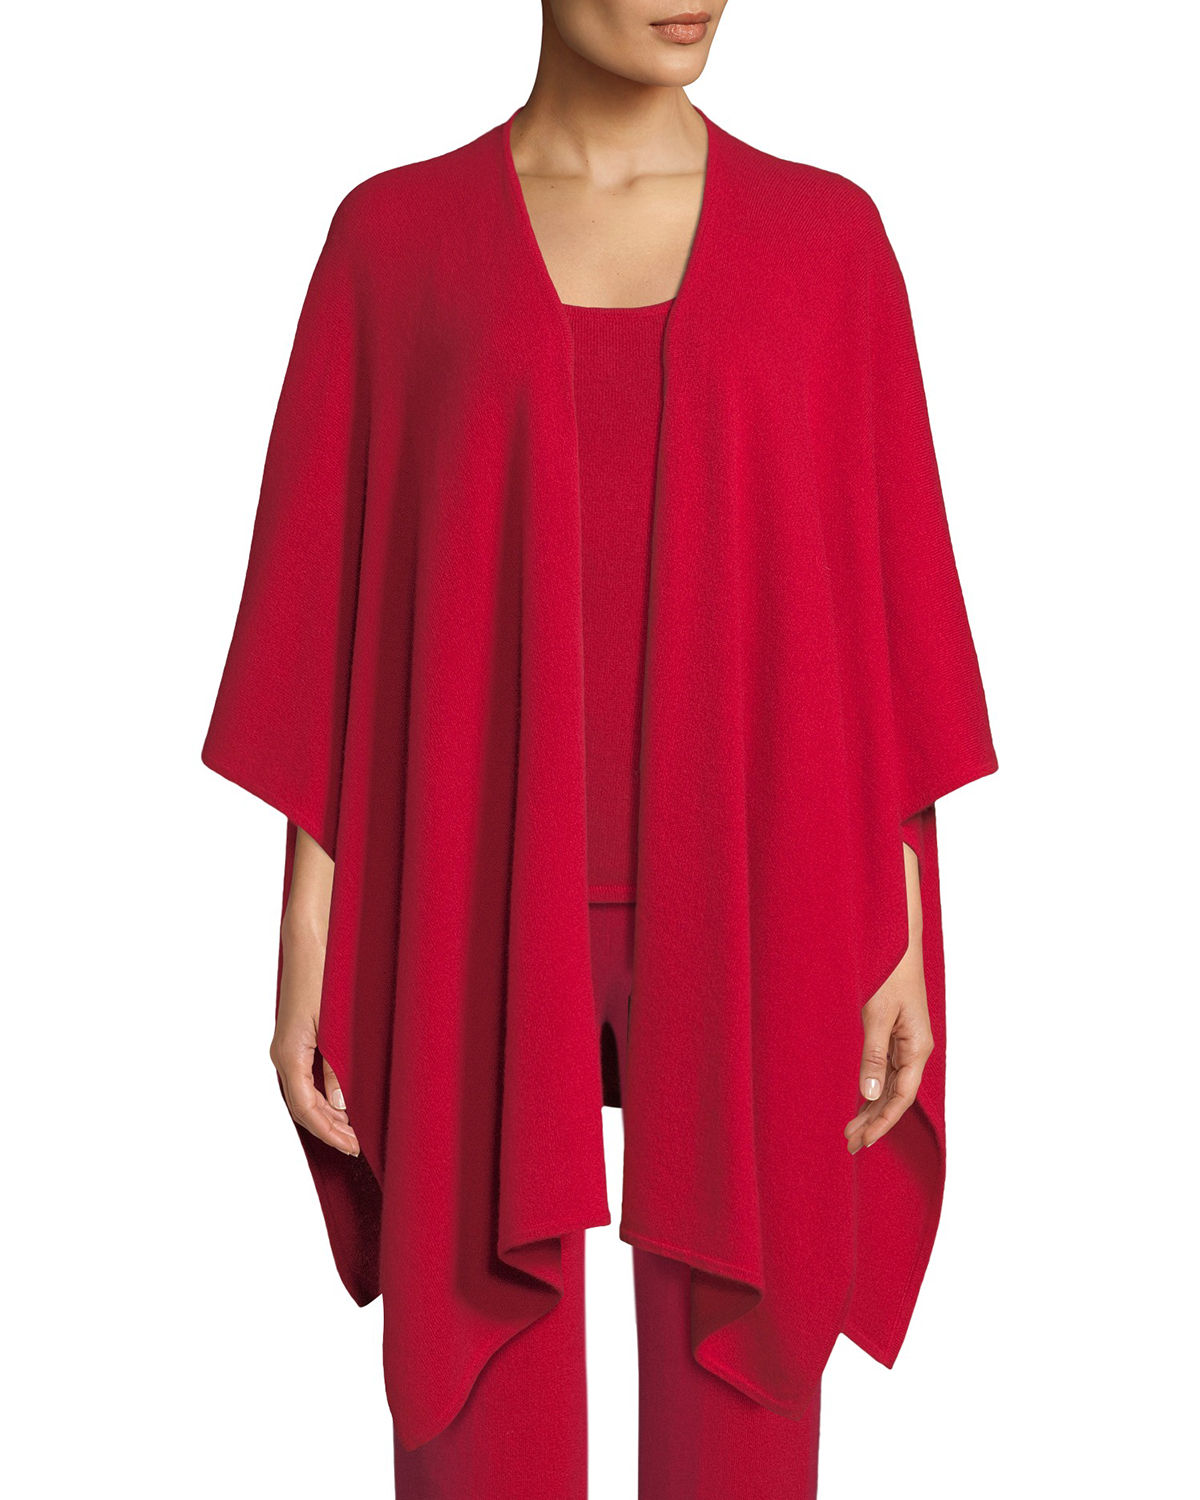 Neiman Marcus Accessories CASHMERE LOUNGE SHAWL